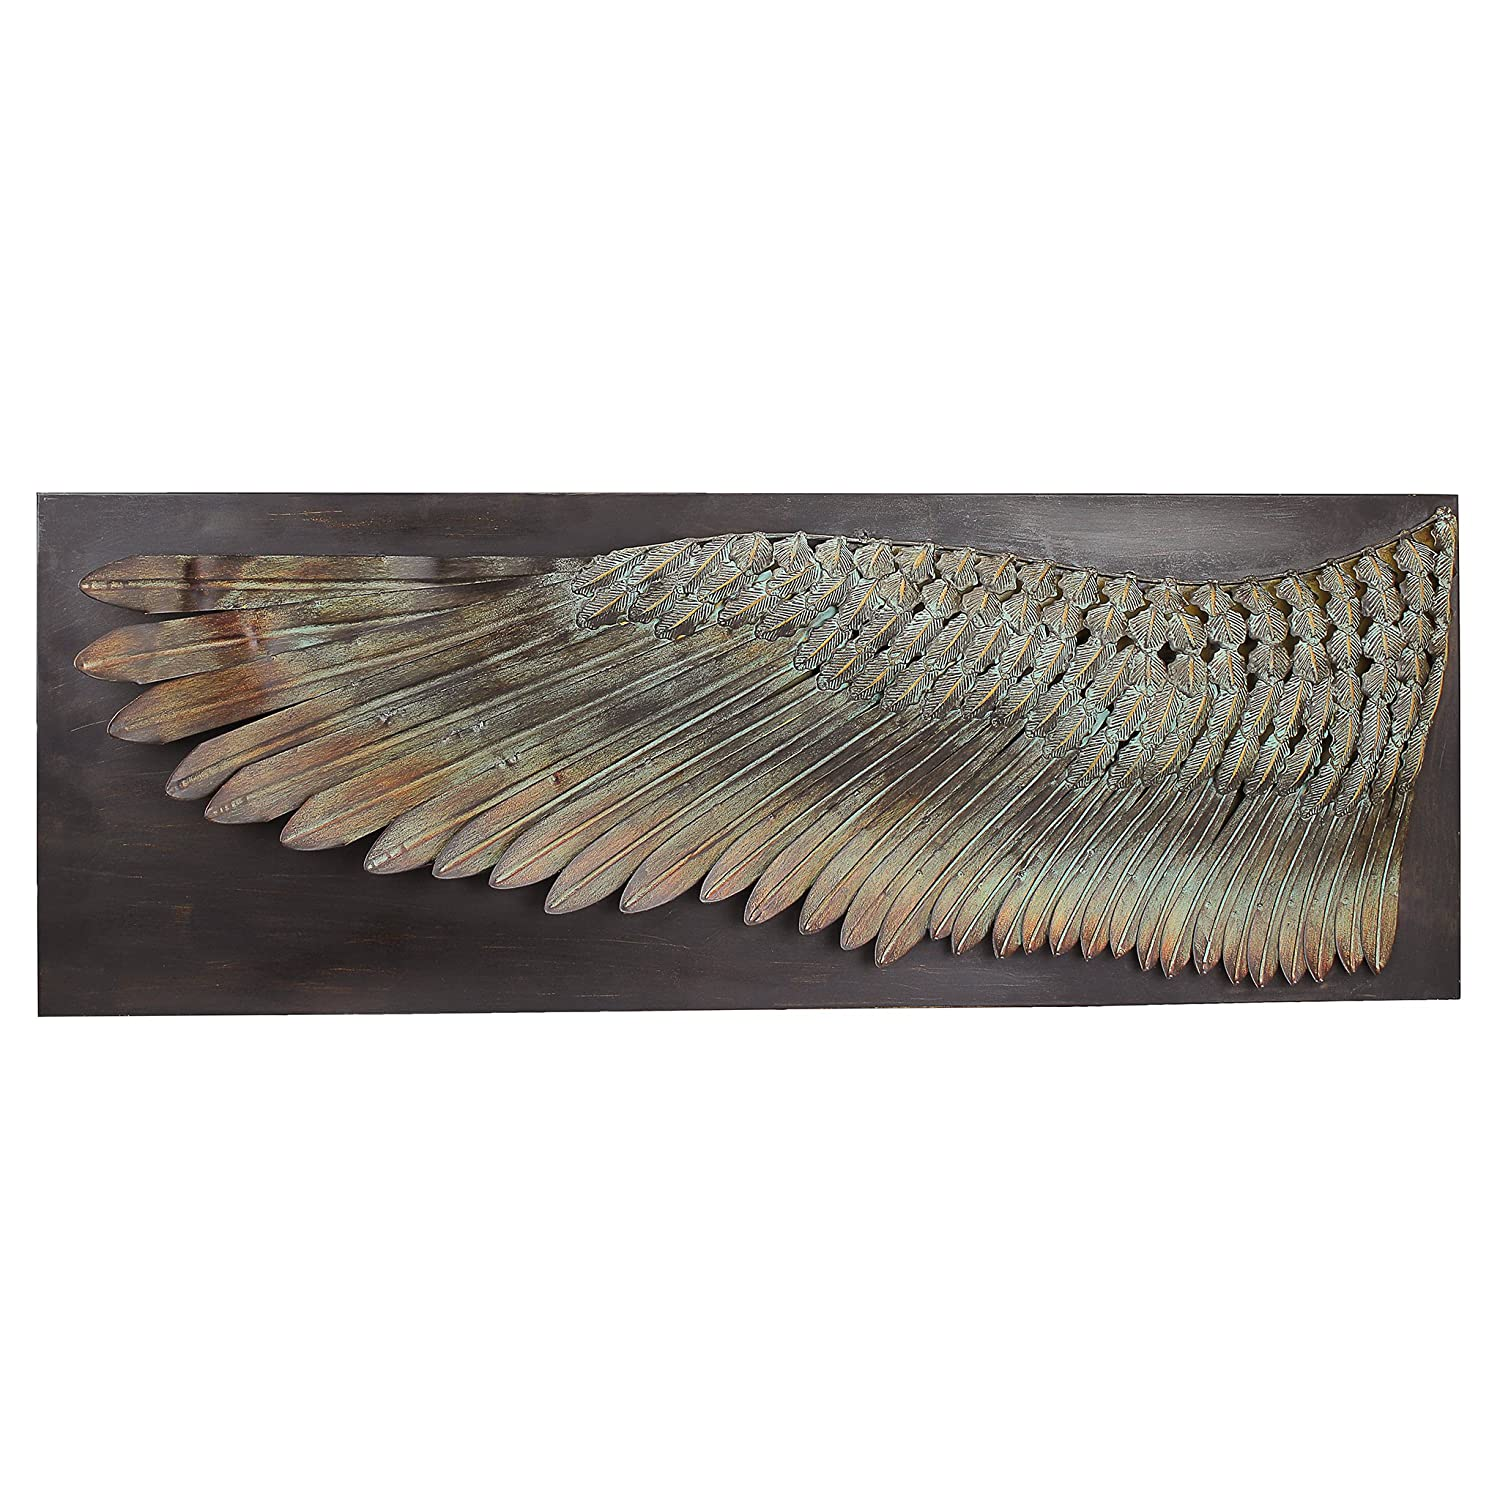 Design Toscano Feather Wing of Icarus Wall Sculpture, 91 cm, Metalware, Bronze Finish MH270348